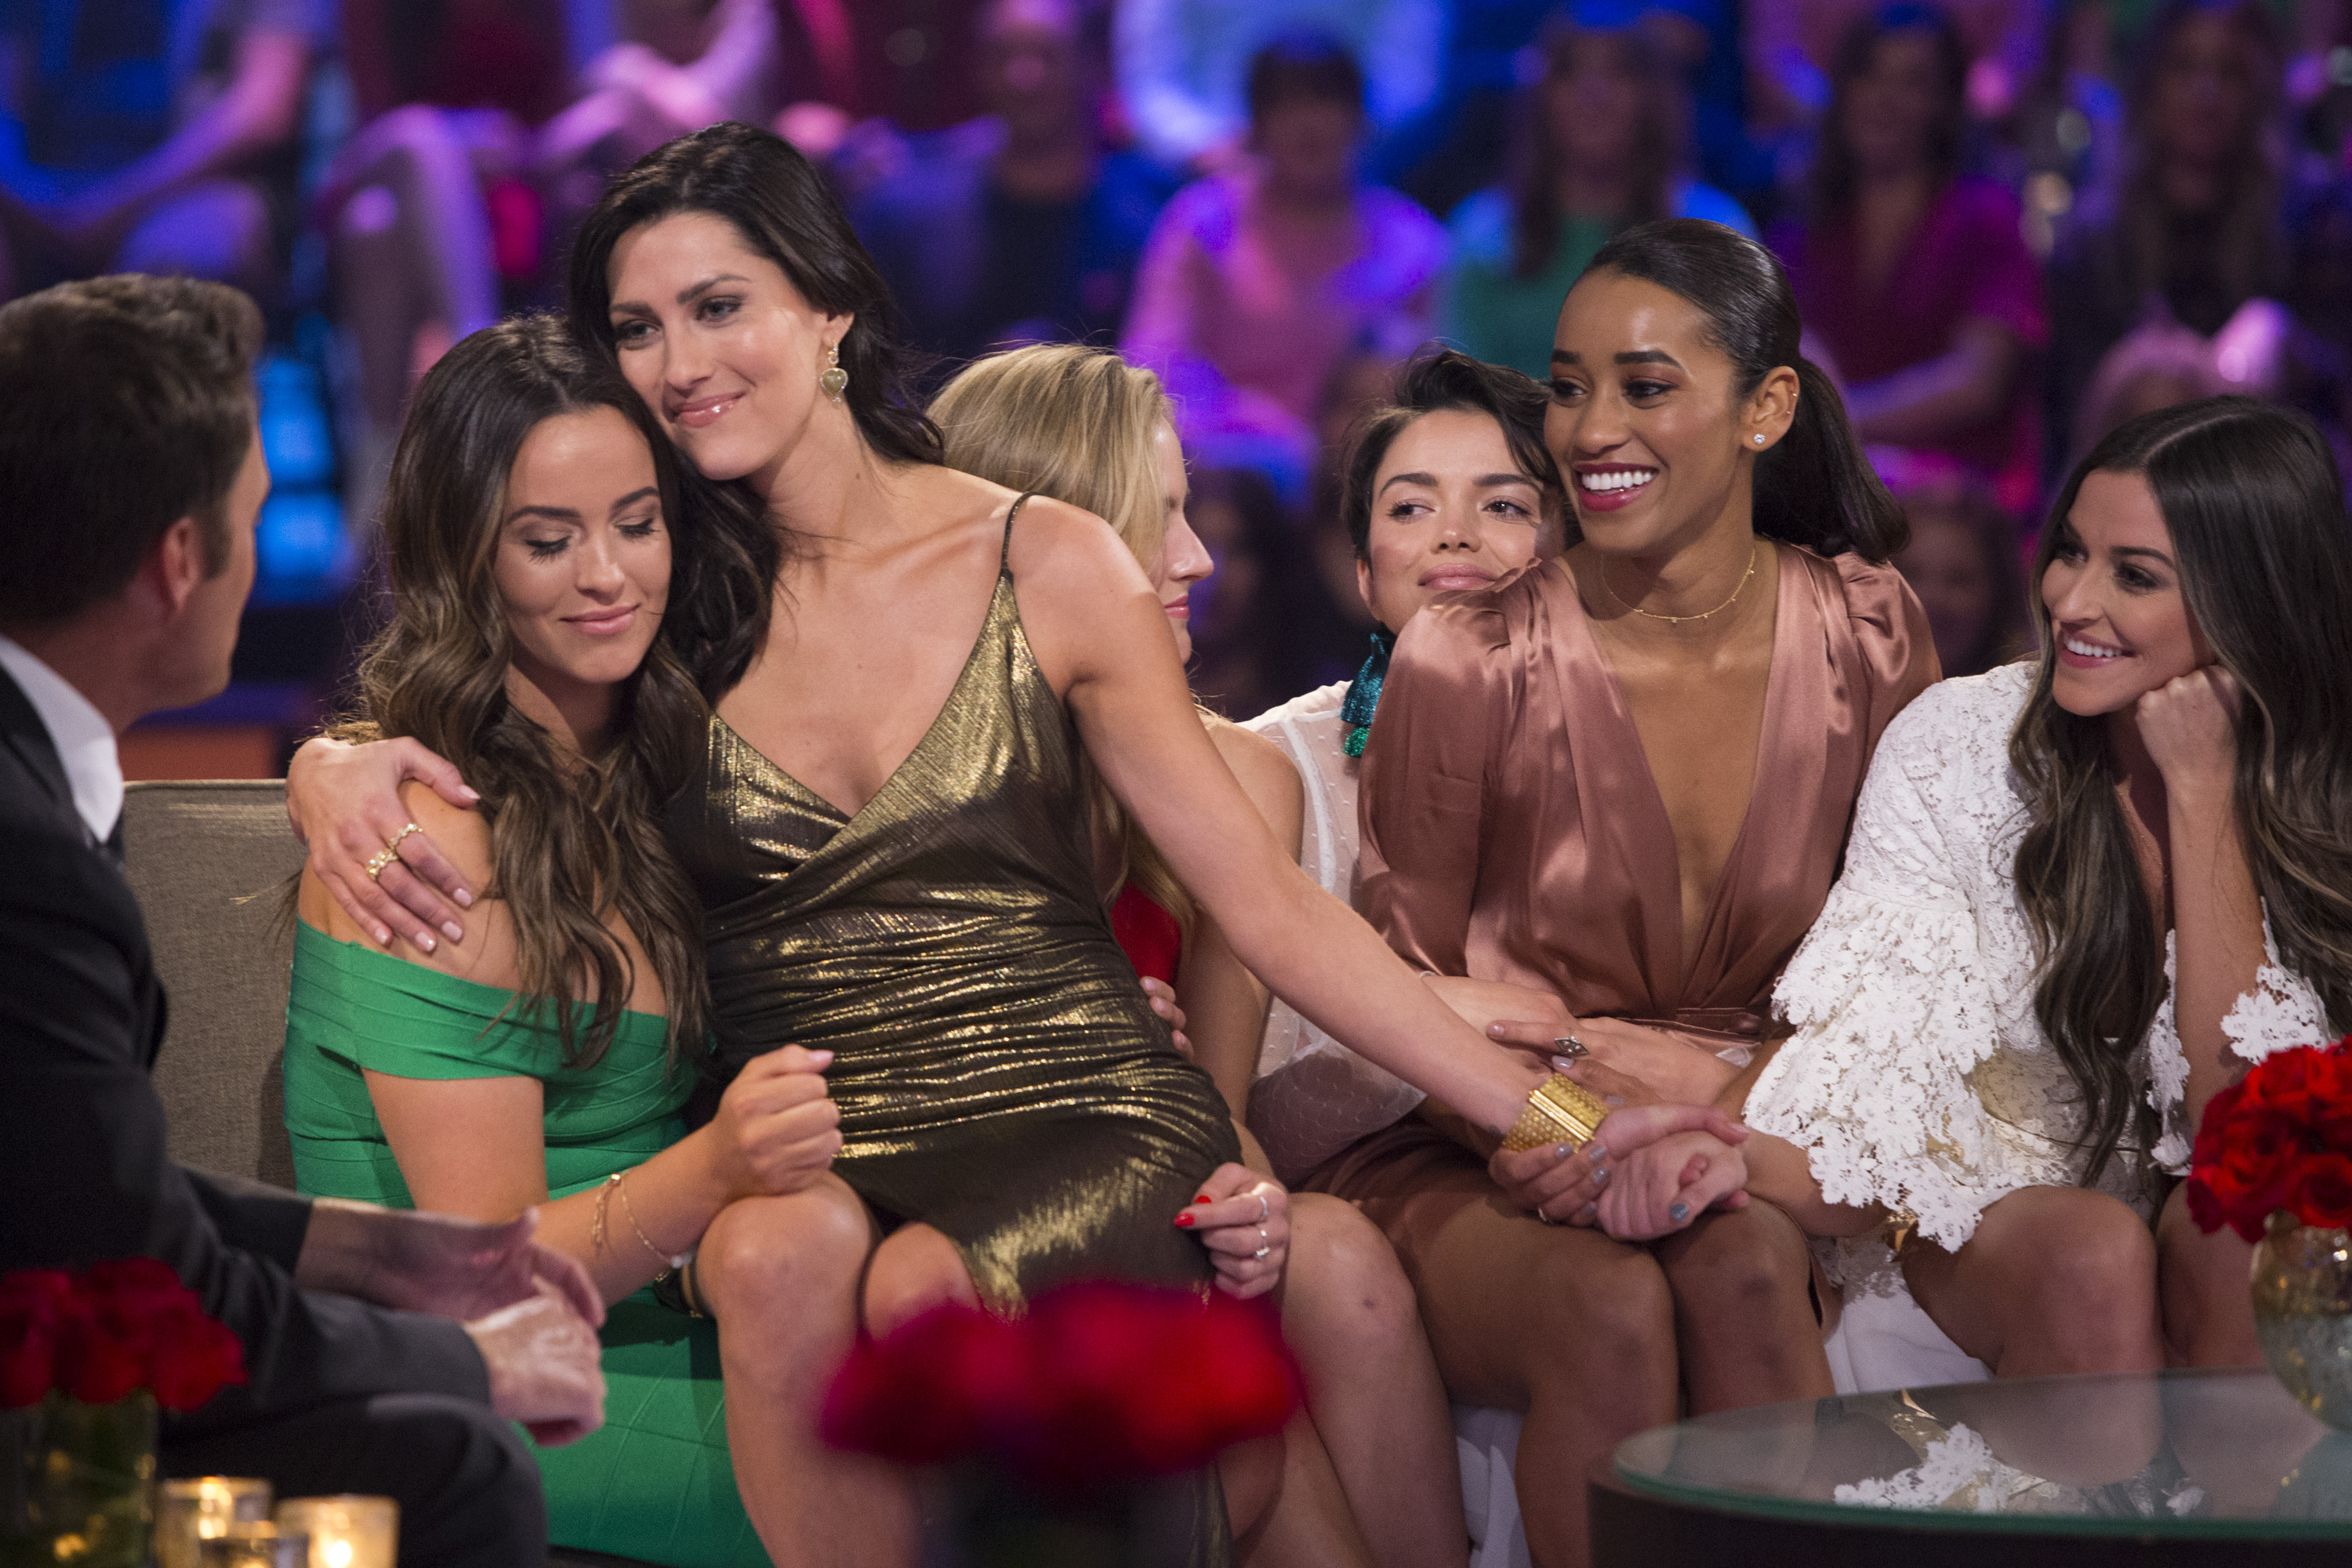 Most importantly, she clearly values sisterhood and made some enduring friendships during her time on The Bachelor. (Image: ABC/Paul Hebert)